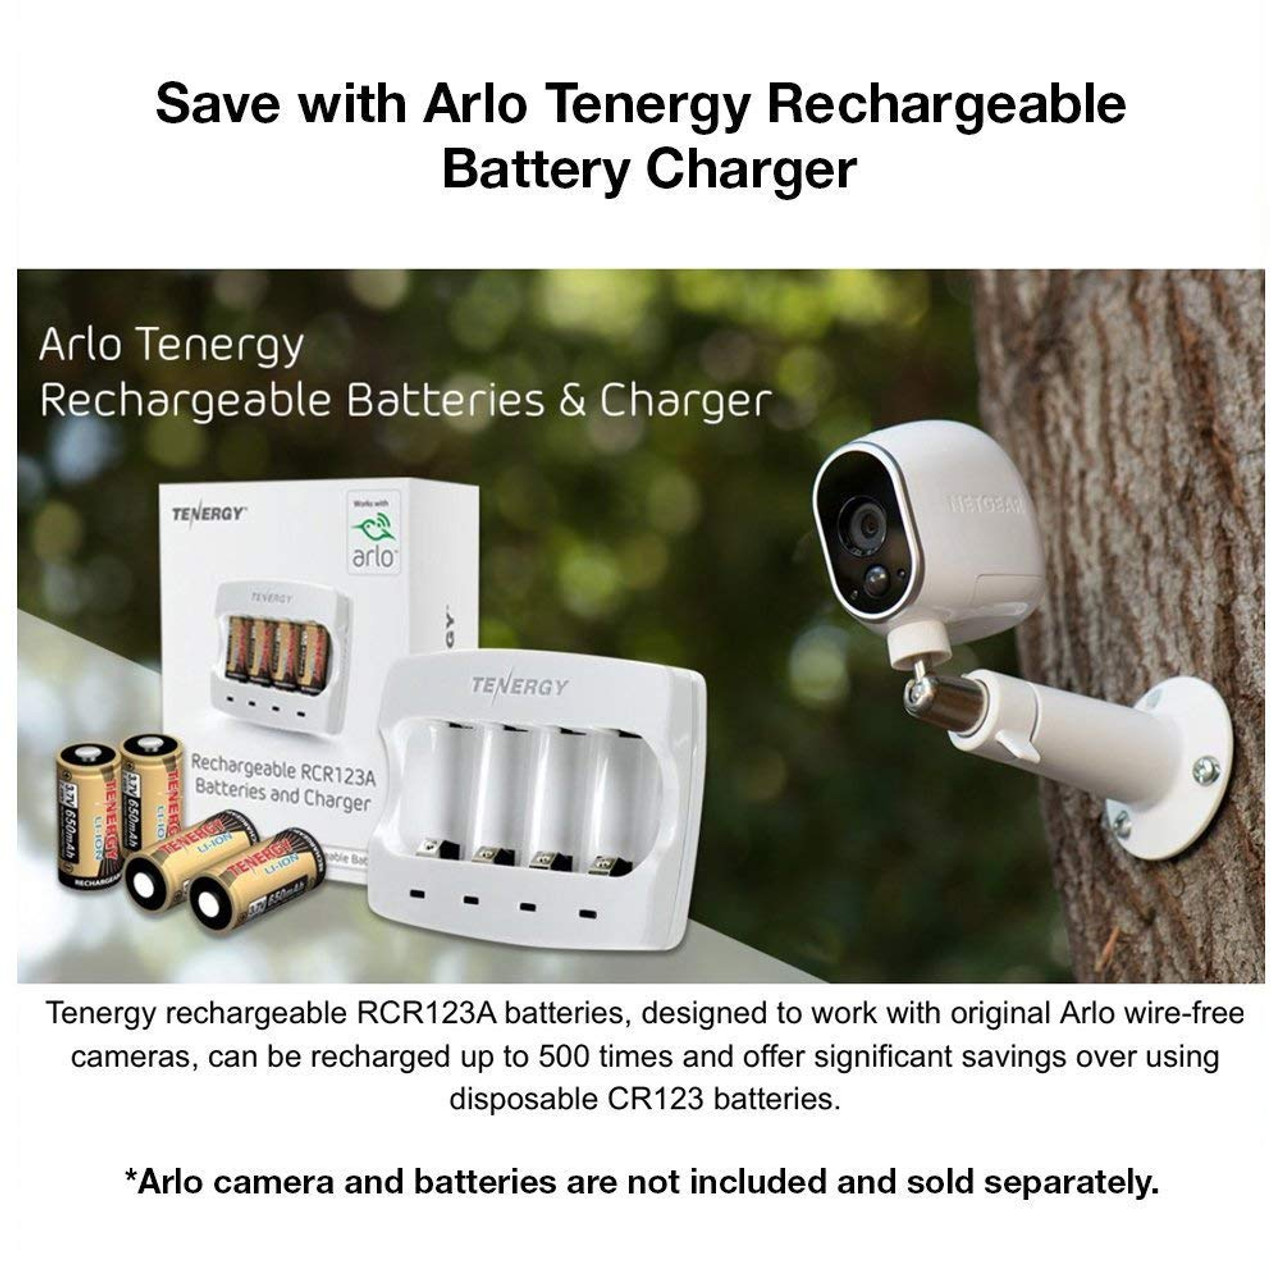 Battery Charger for Arlo Certified 3.7V RCR123A Li-ion Rechargeable Batteries (for Arlo Smart Security Cameras